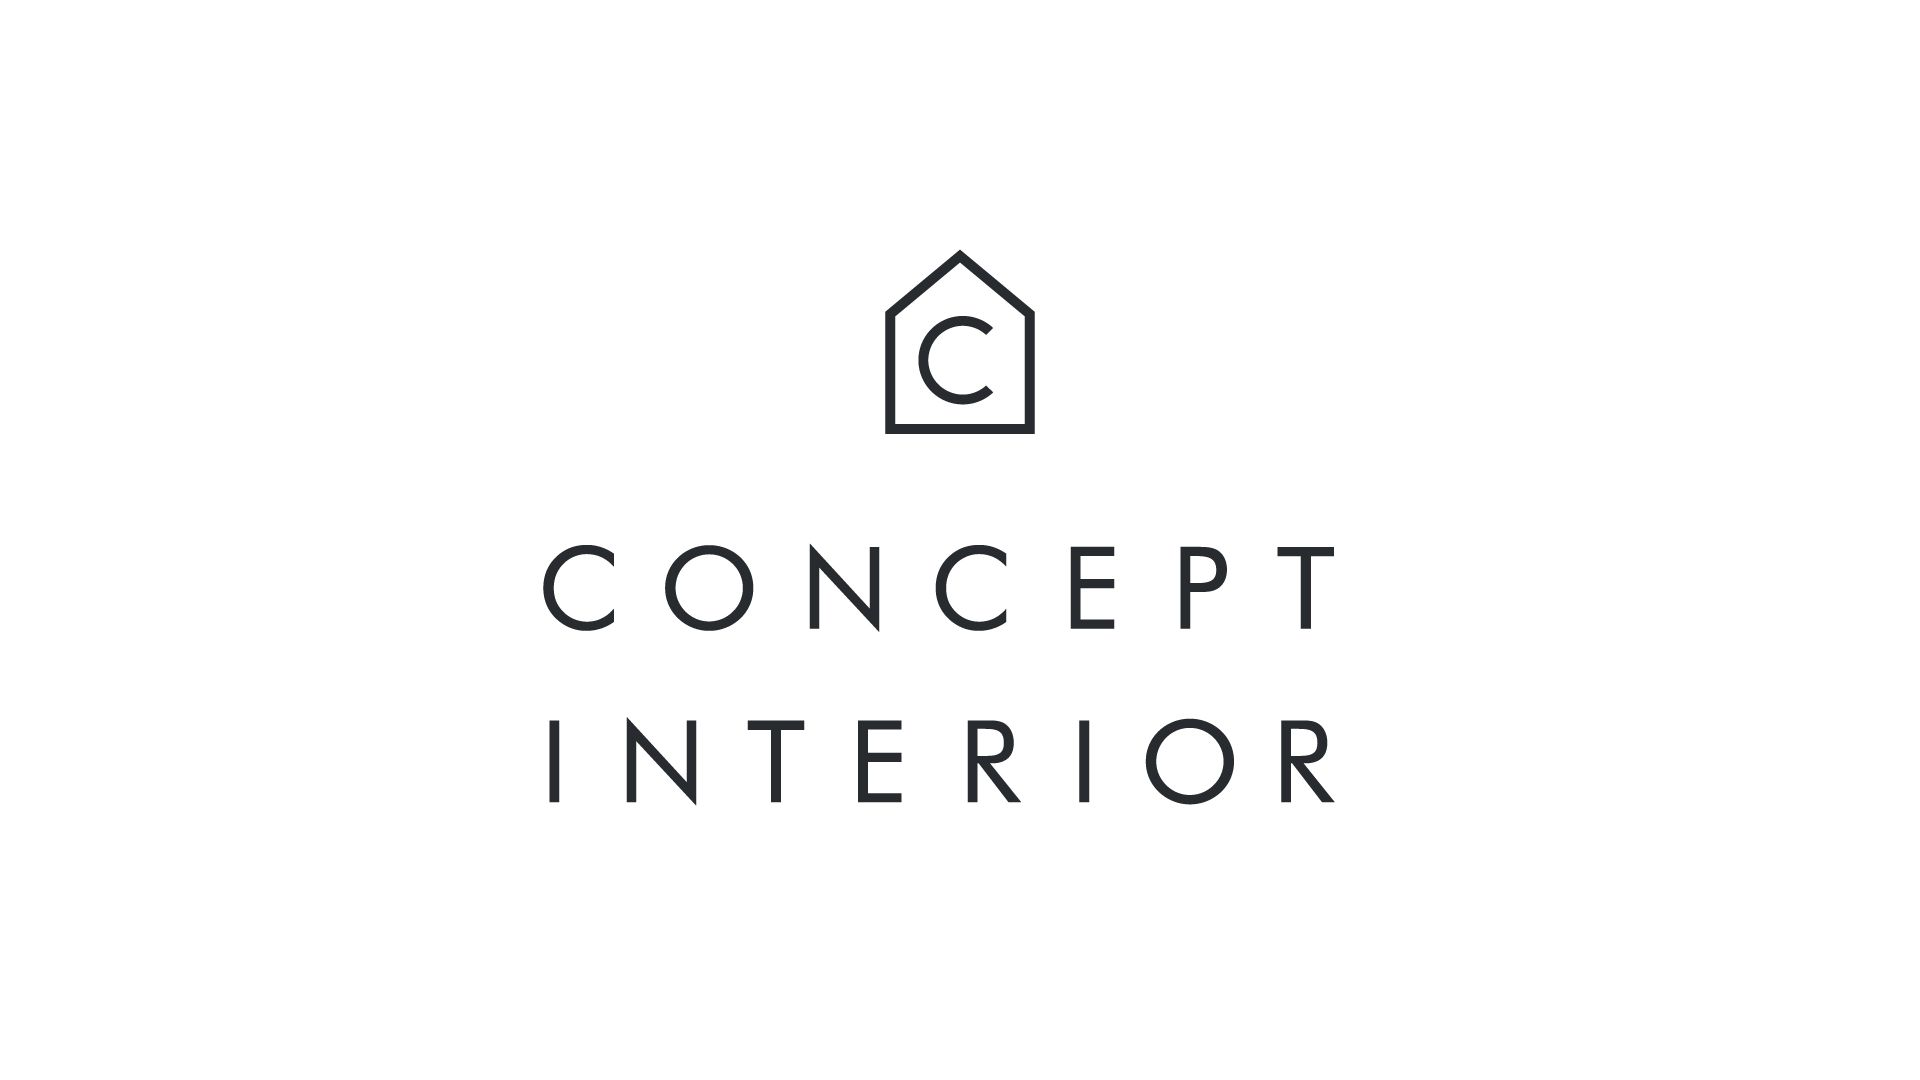 Interior design company logos home design ideas for Interior design company list